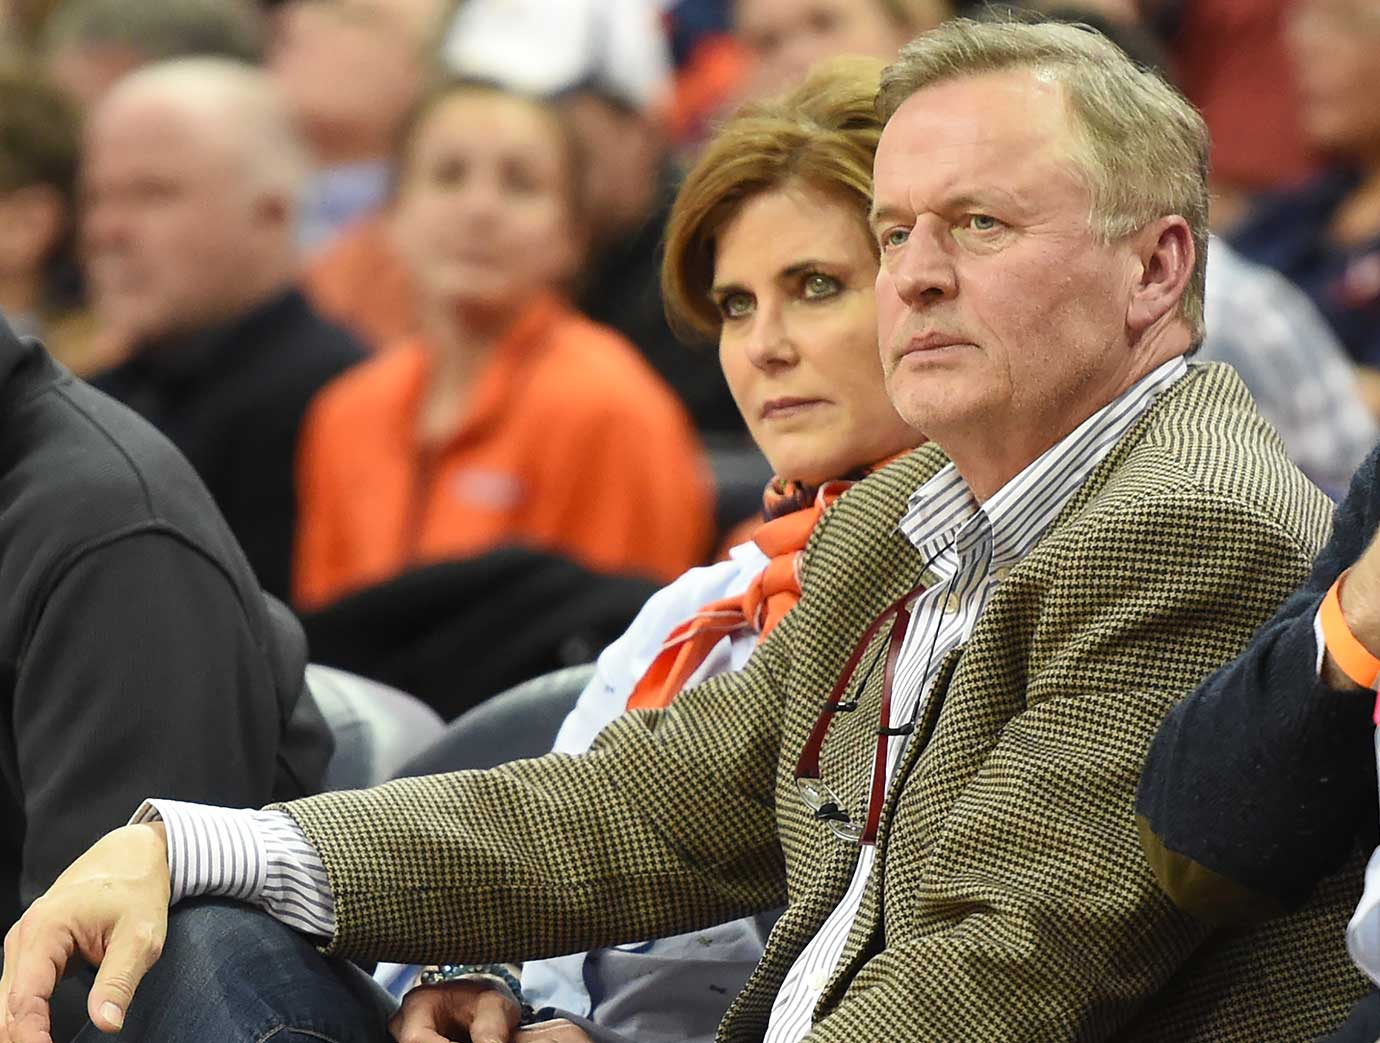 Writer John Grisham looks on during a college basketball game between Virginia and Virginia Tech in Charlottesville.